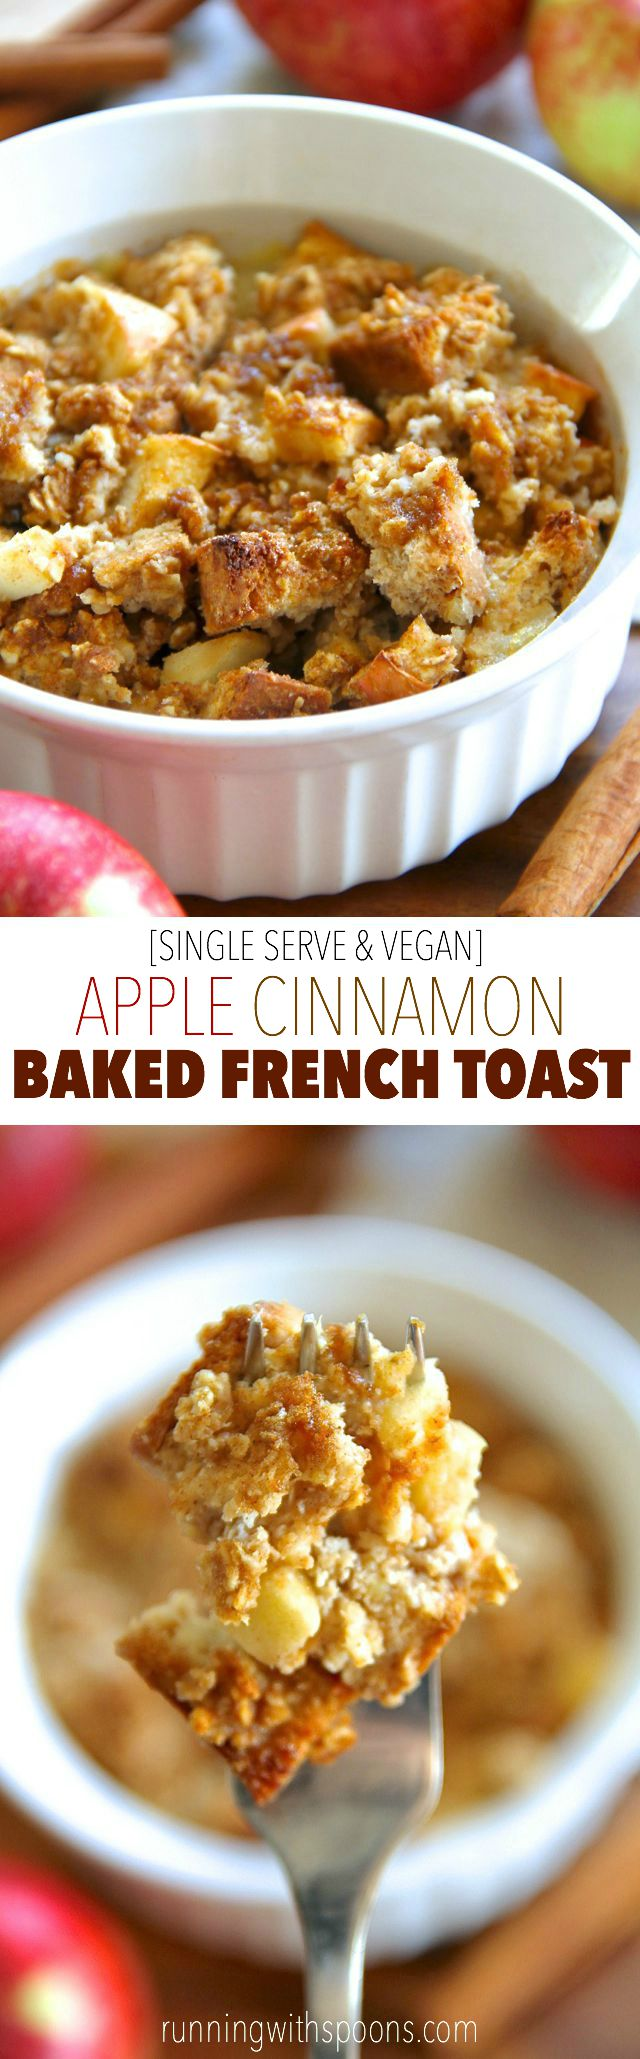 This single serve baked French toast is spiked with the delicious combination of apples and cinnamon! It's vegan, refined sugar free, easily made gluten-free, and packed with fiber and plant-based protein. A healthy and delicious breakfast! || runningwithspoons.com